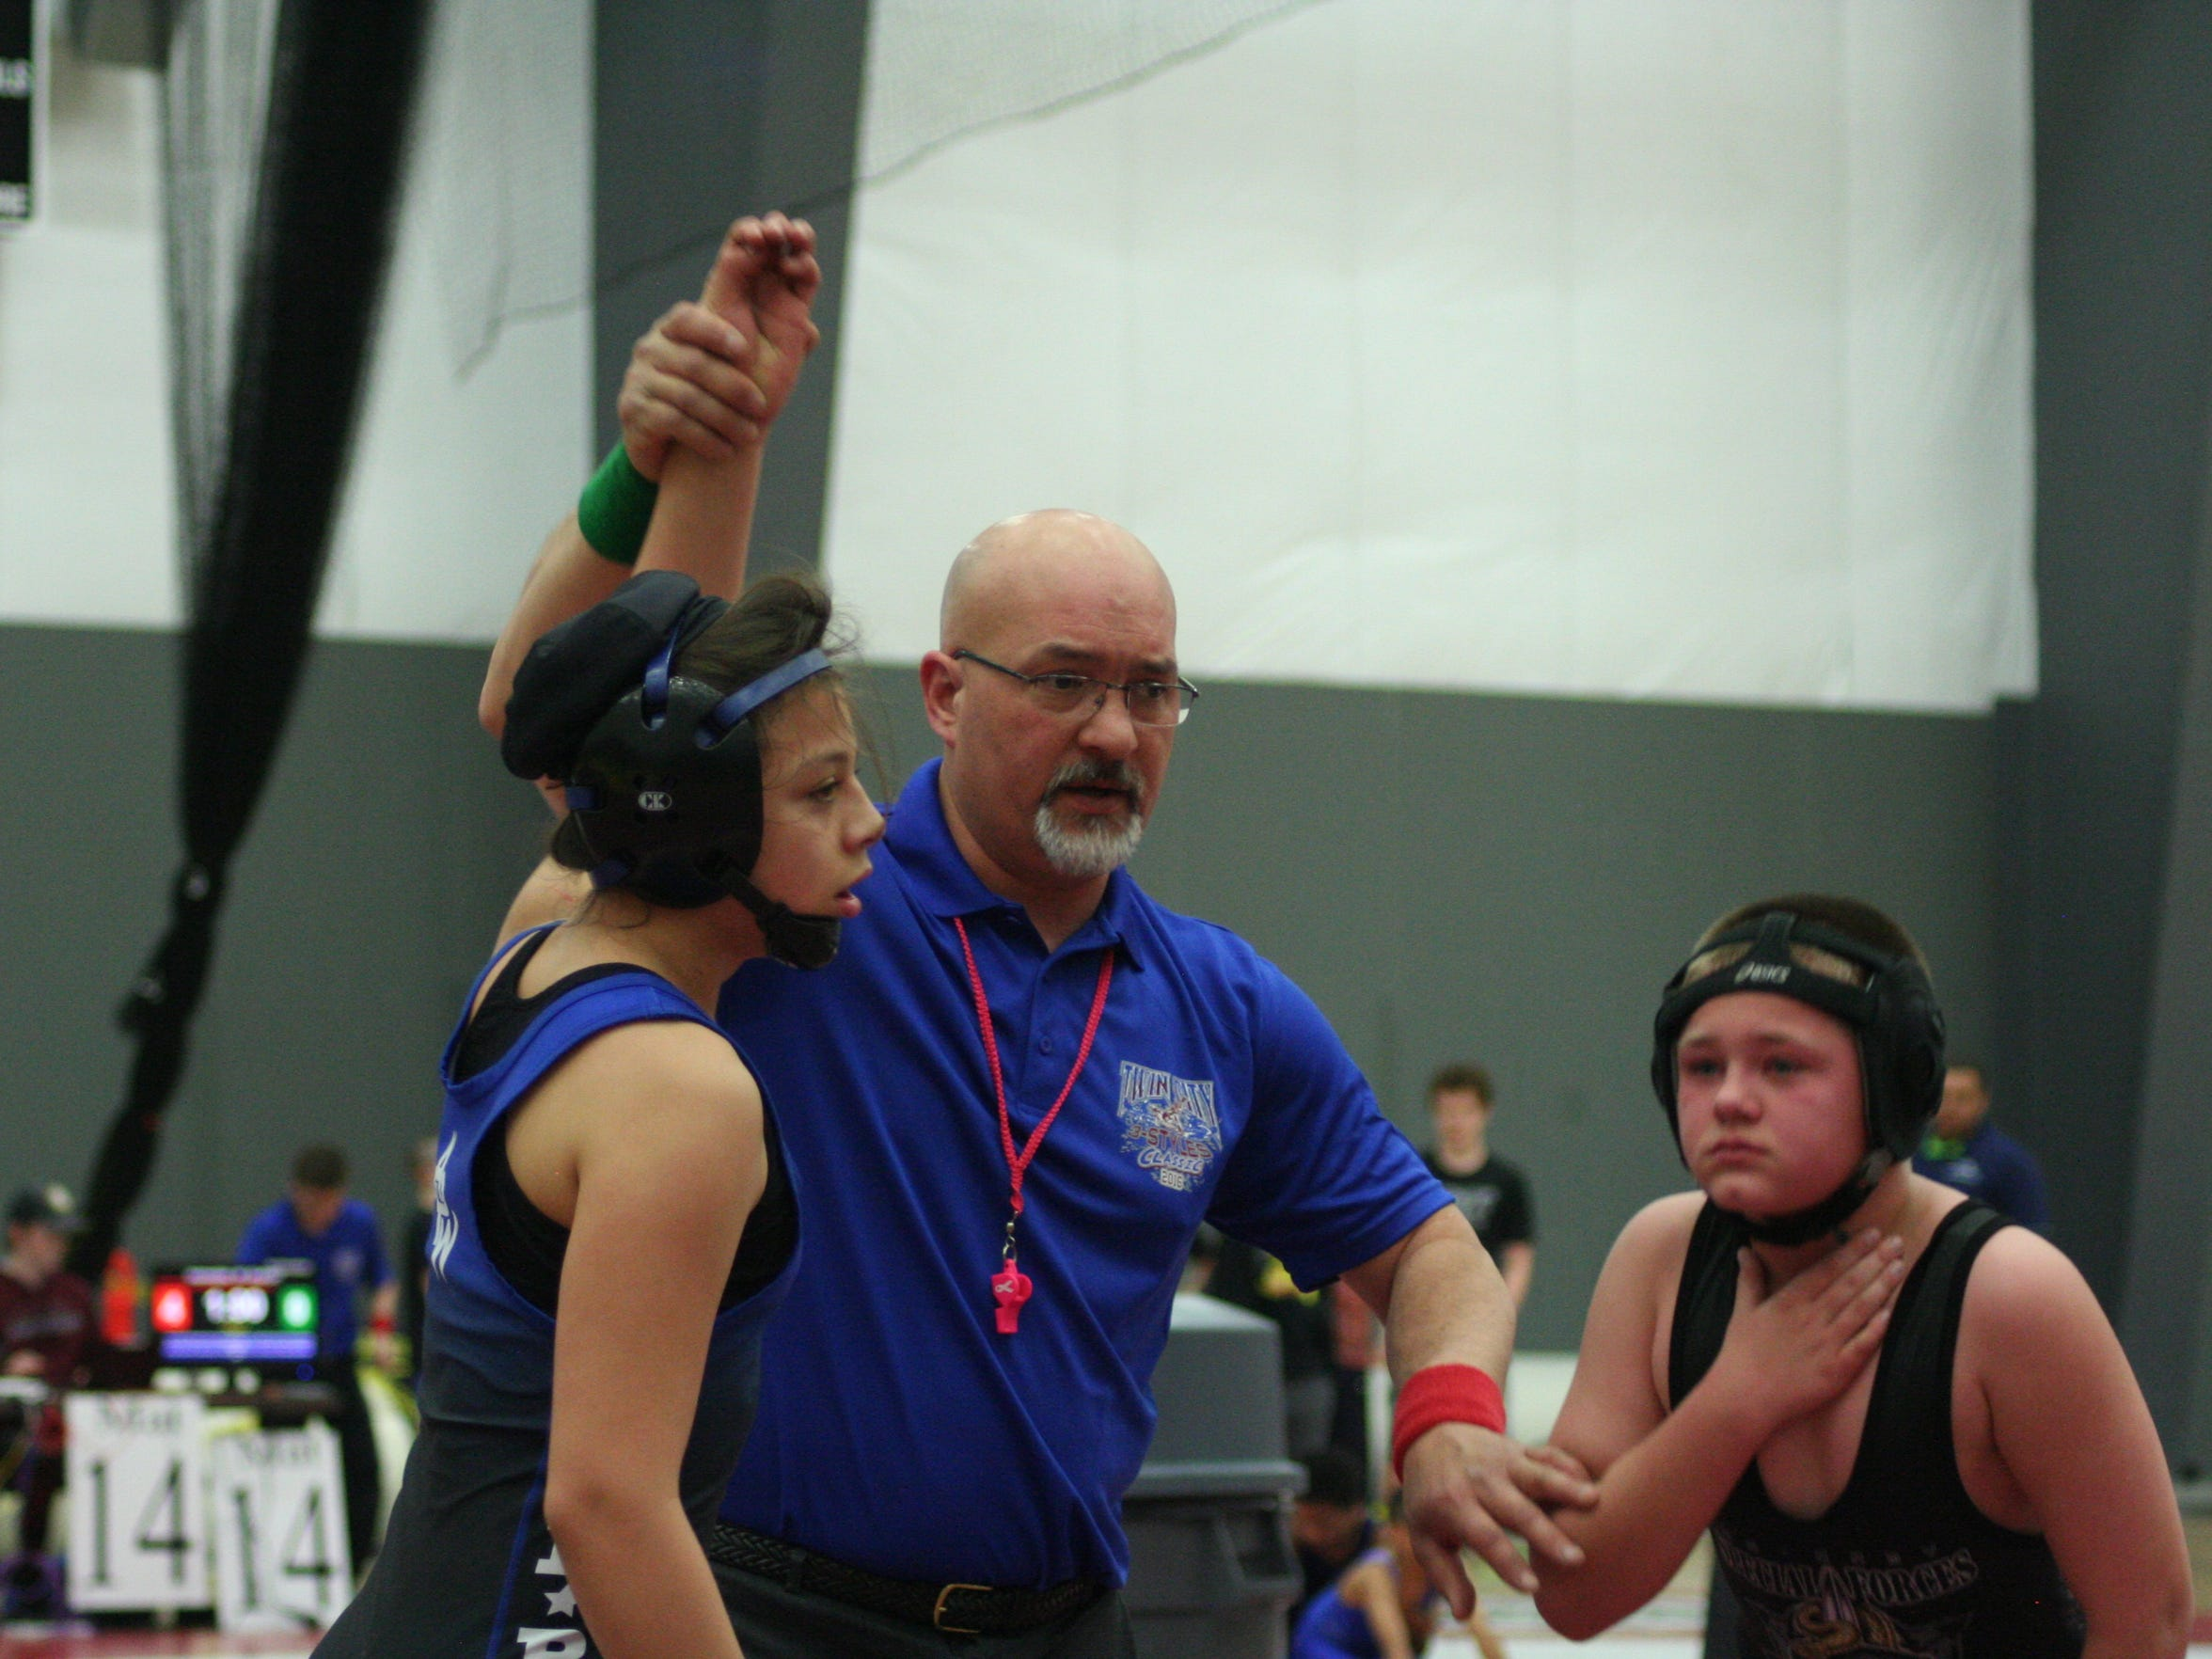 Destiny Rodriguez (left) of Keizer has her hand raised after defeating a boy in a wrestling tournament.